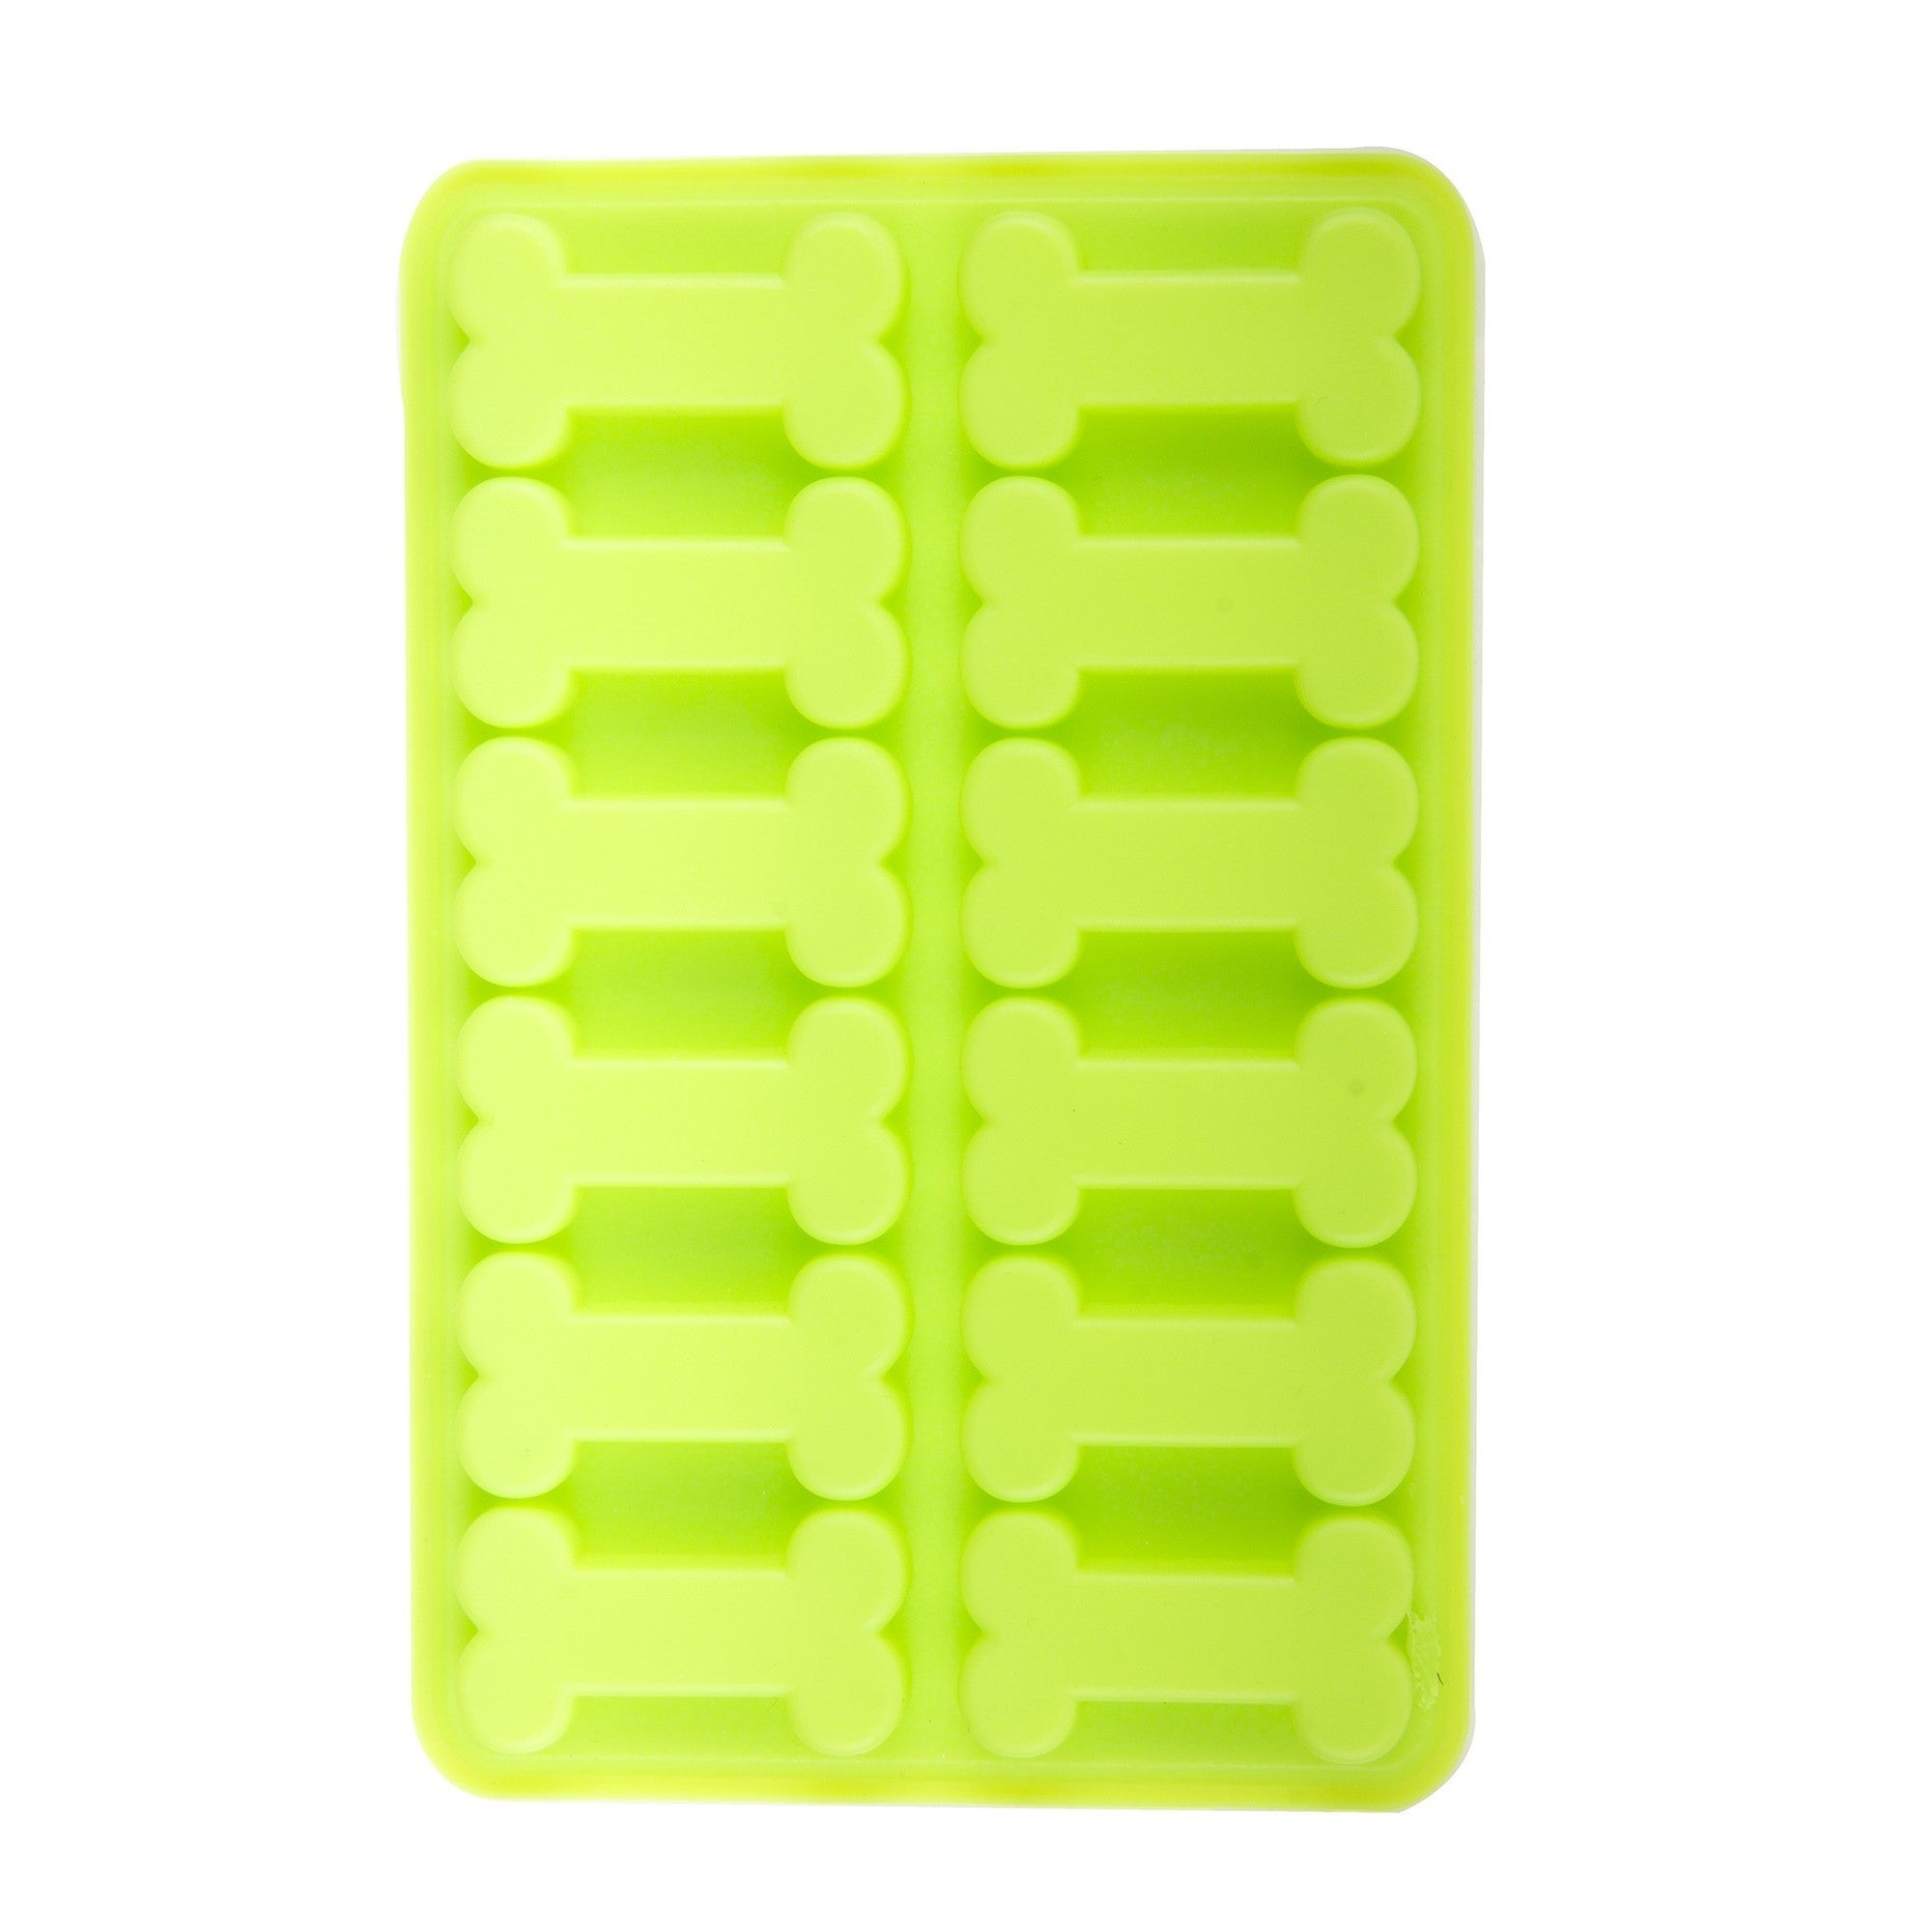 Silicone Bone-shaped Mold/ Tray (Silicone Baking Mold), W...